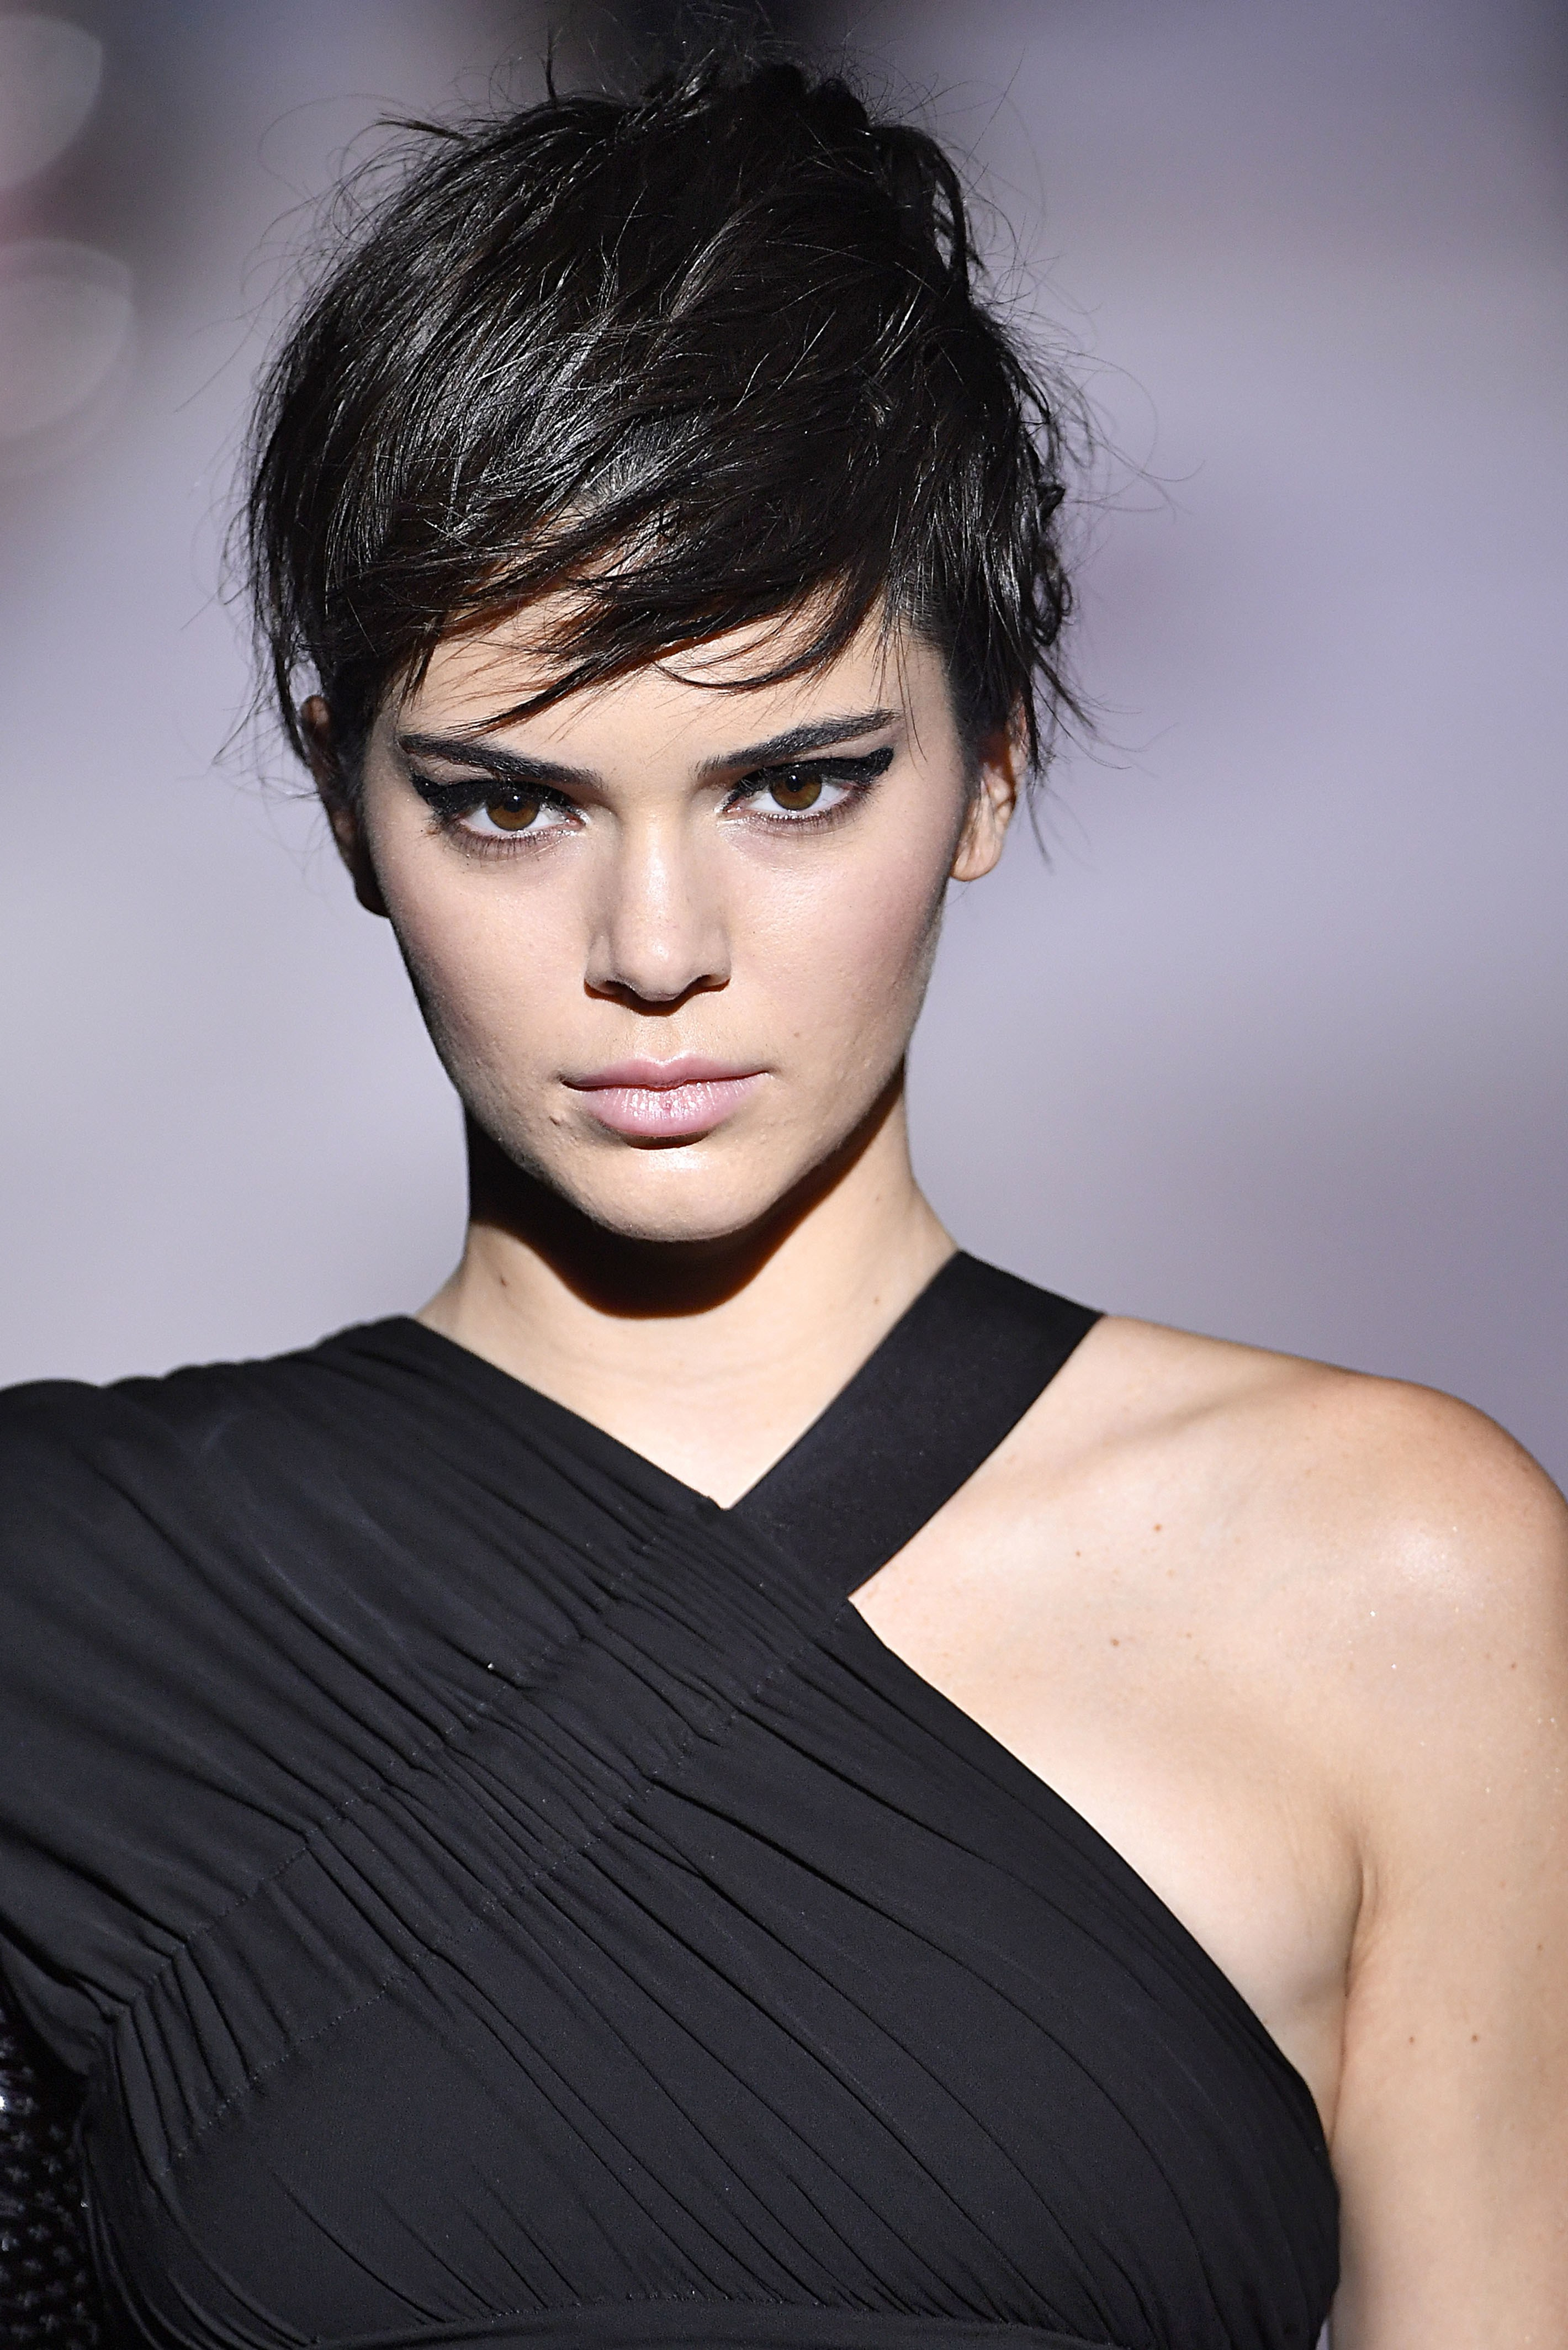 Kendall Jenner Channeled Kris Jenner With A Faux Pixie At The Tom Regarding Kris Jenner Short Haircuts (View 24 of 25)